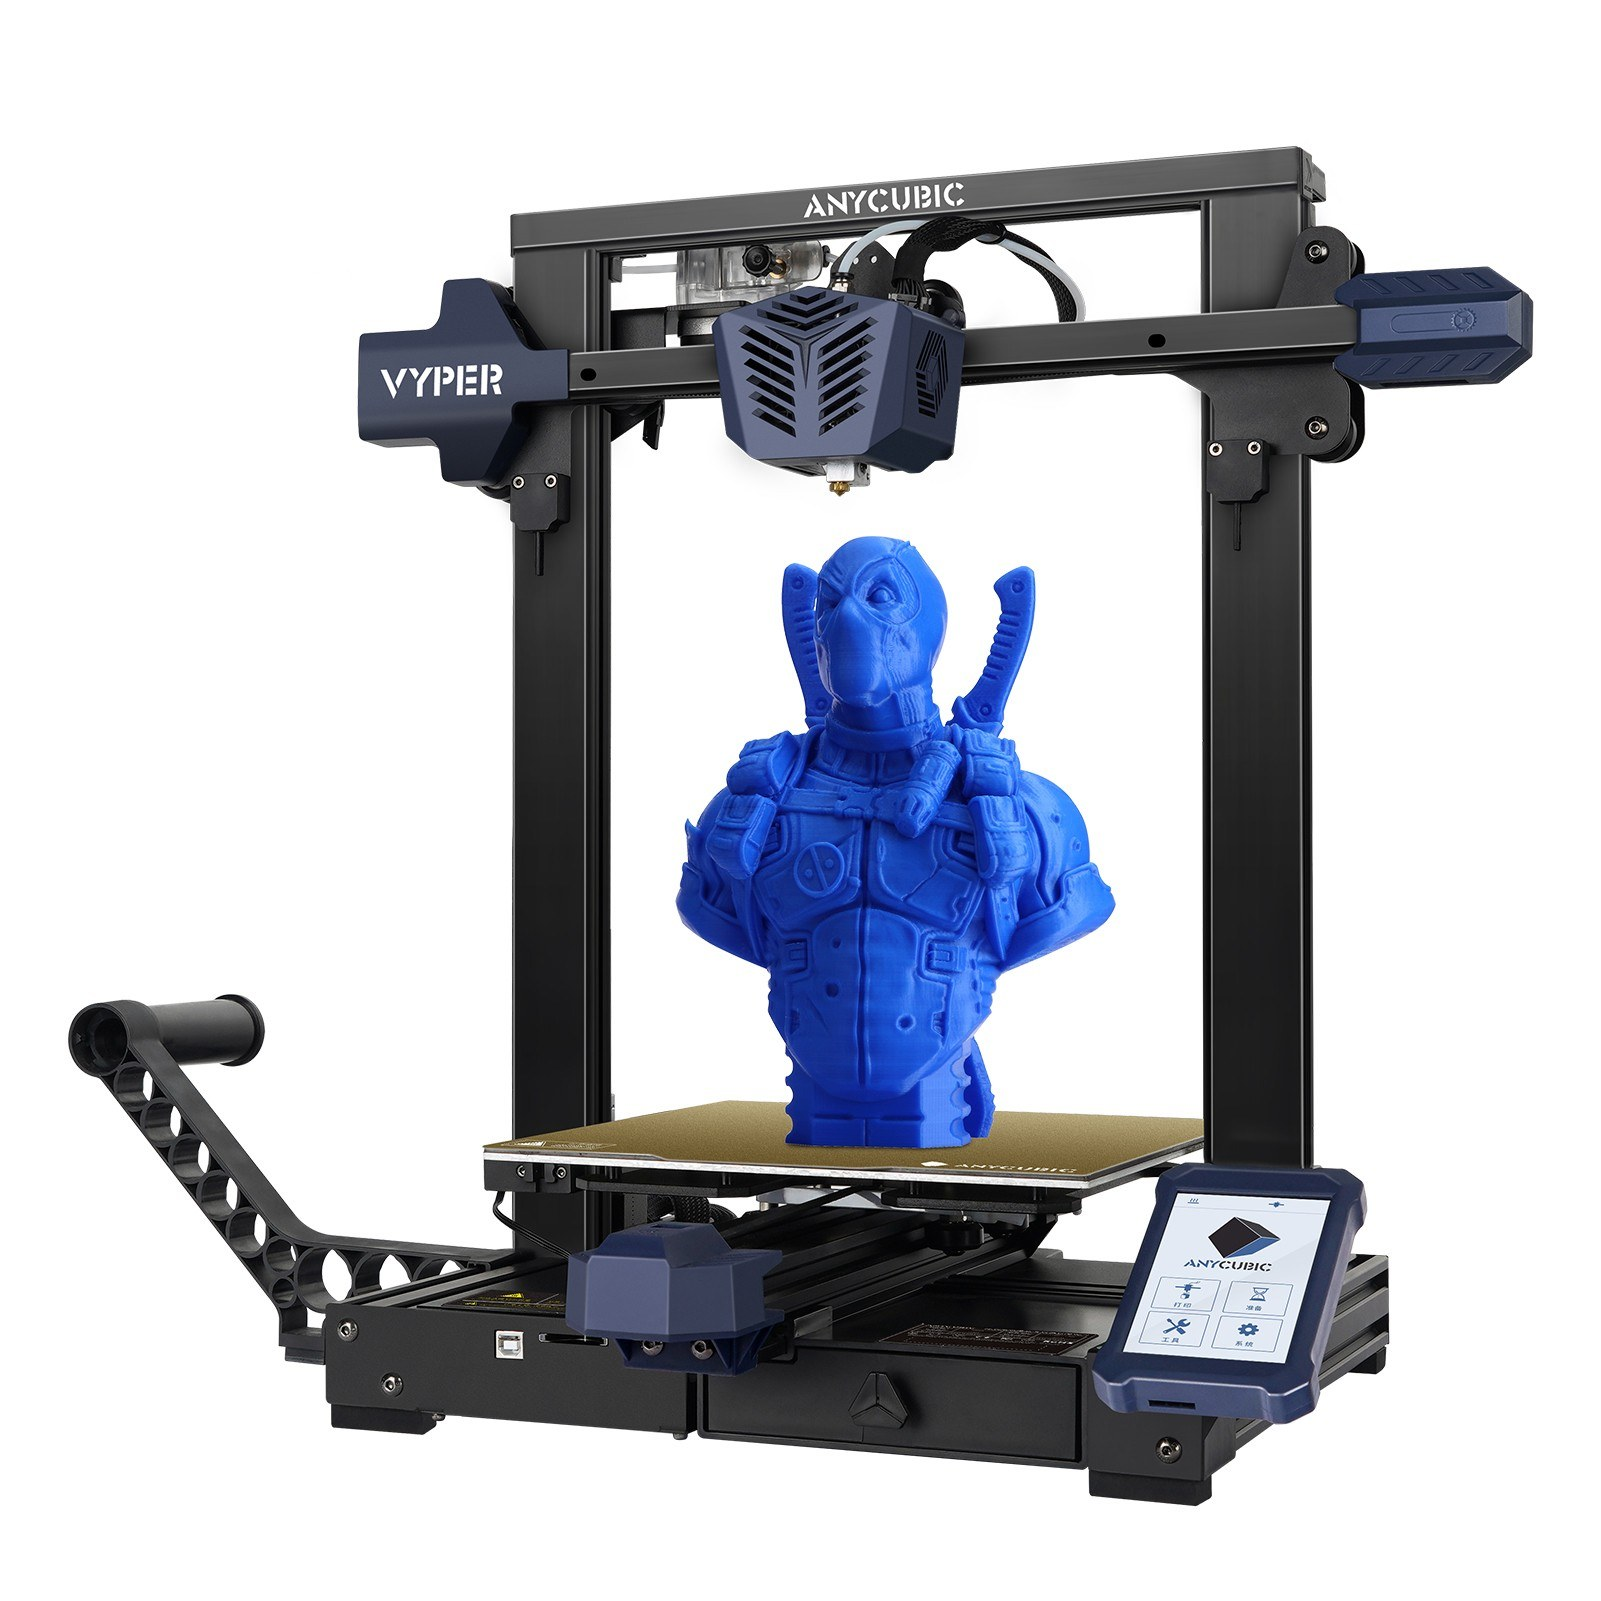 Tomtop - [EU Warehouse] $110 OFF ANYCUBIC Vyper 3D Printer Kit 245x245x260mm Print, $339 (Inclusive of VAT)